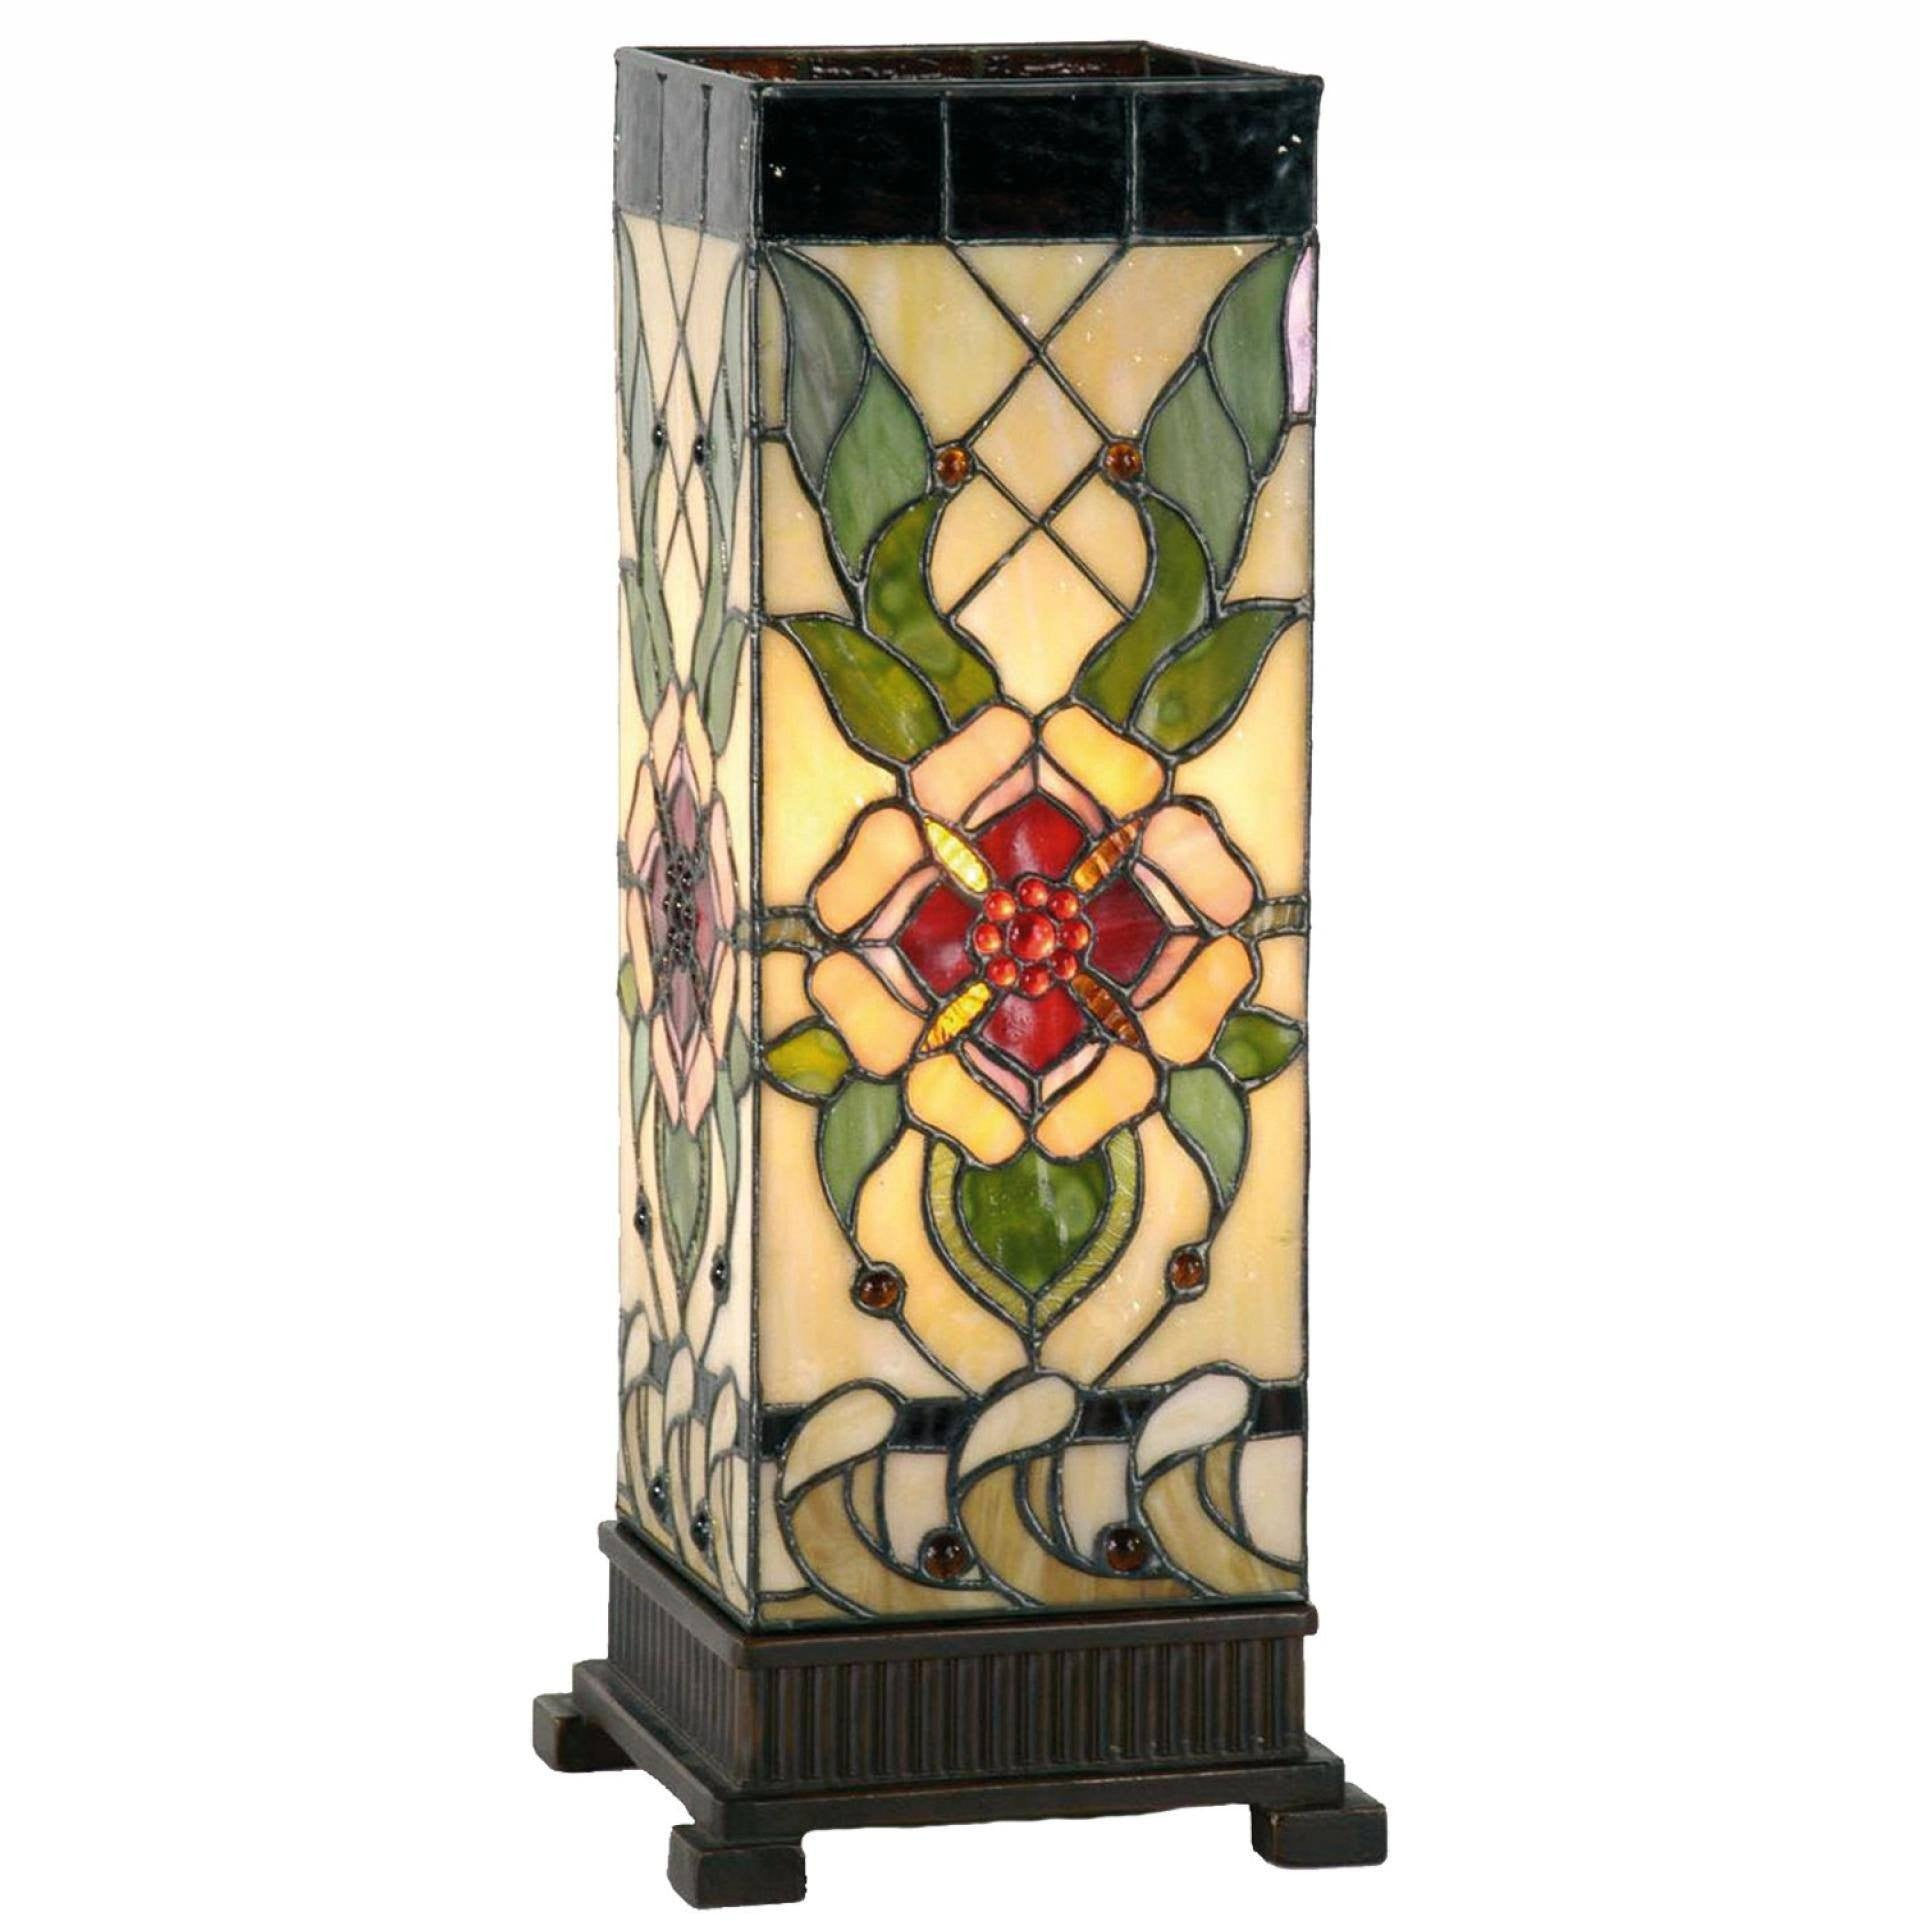 Tiffany Square Table Lamps - Angelique Large Square Tiffany Table Lamp